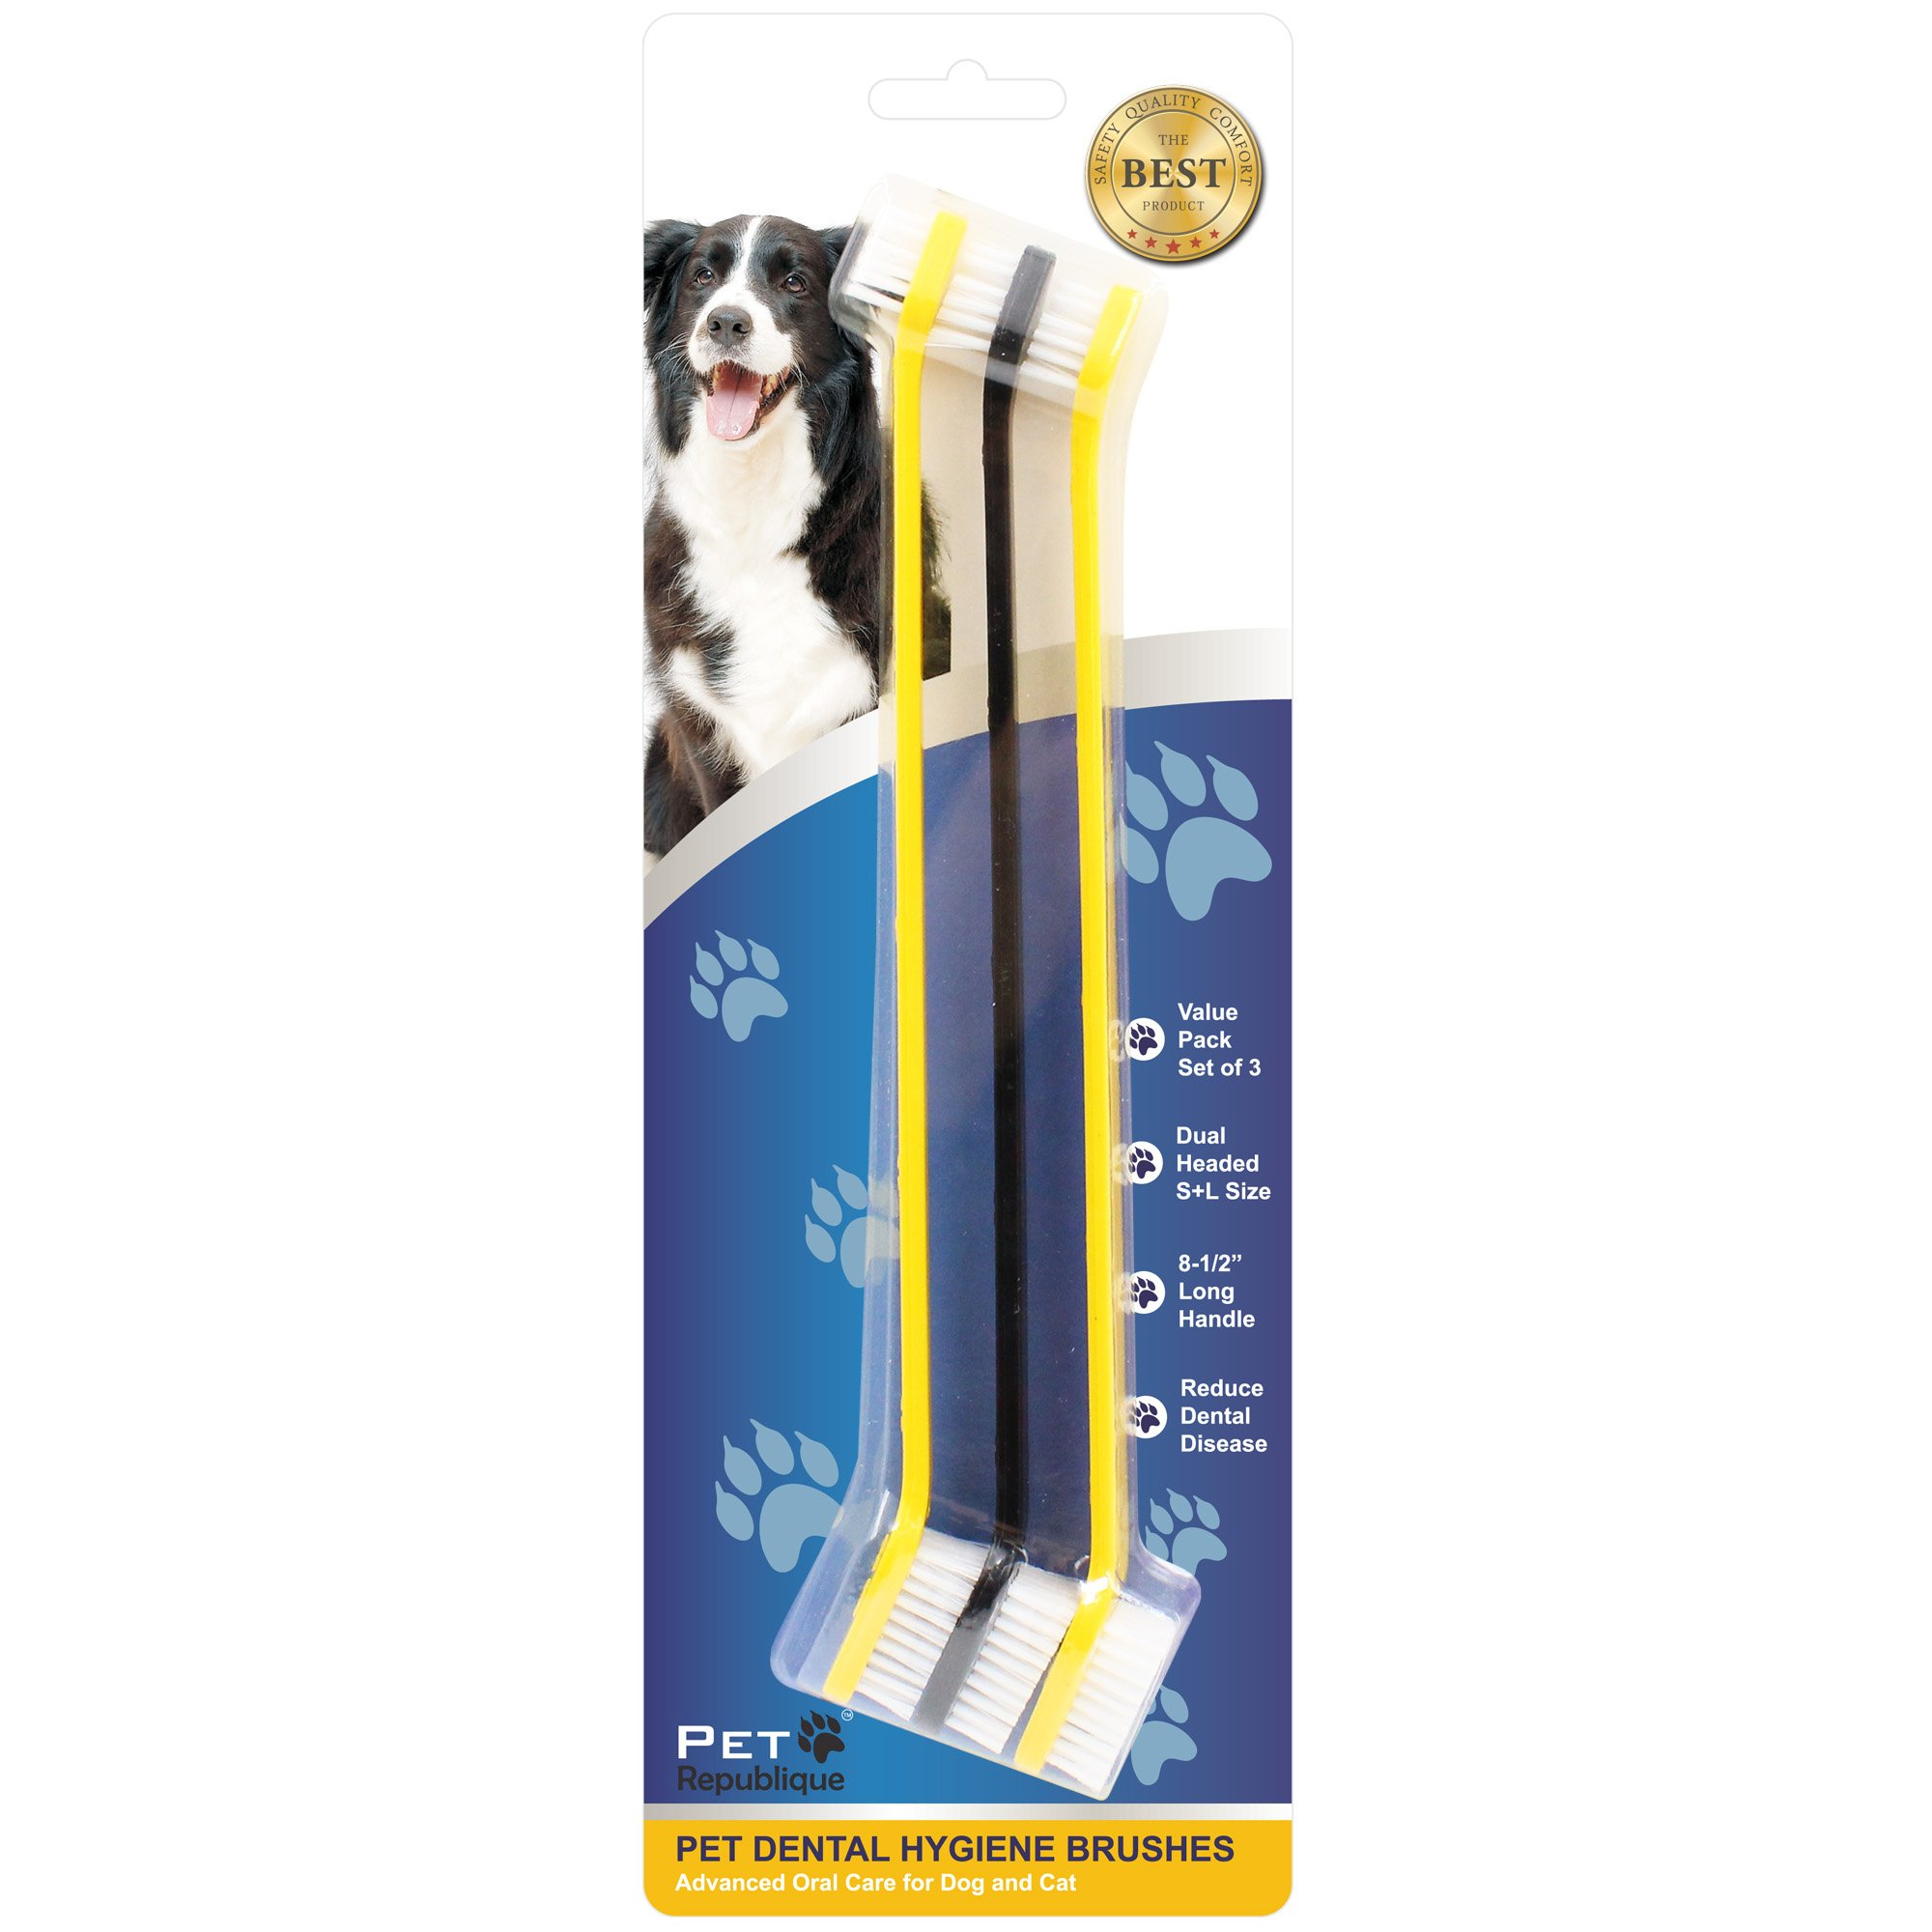 Pet Republique Dog Toothbrush Set of 3 - Dual Headed Dental Hygiene Brushes for Small to Large Dogs, Cats by Pet Republique